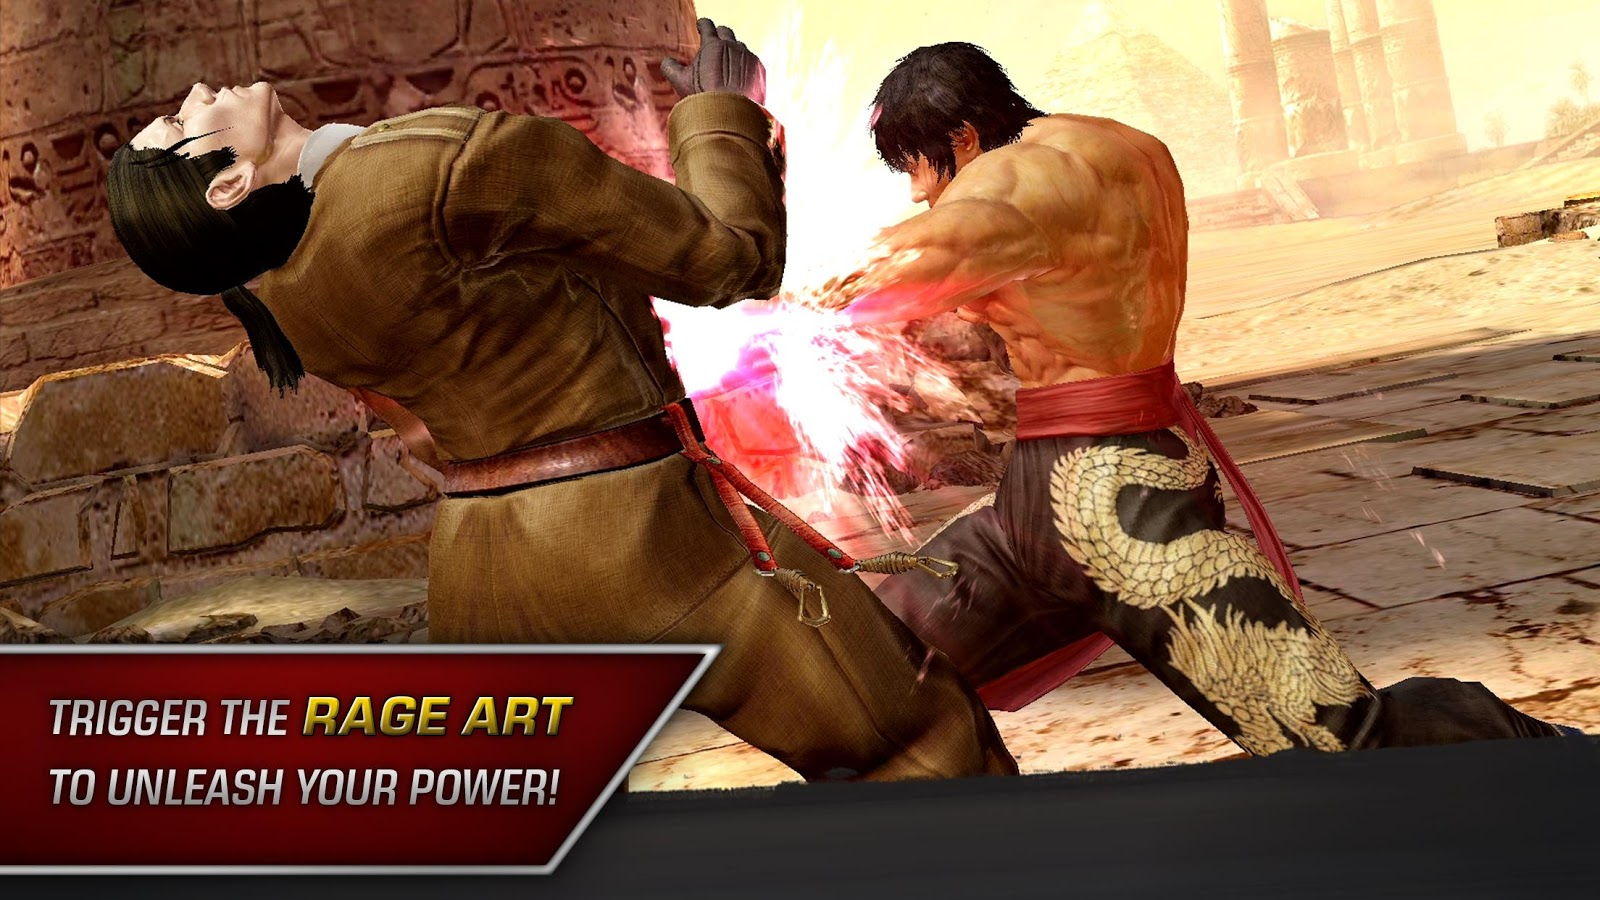 Bandai Namco's free-to-play fighting game 'Tekken Mobile